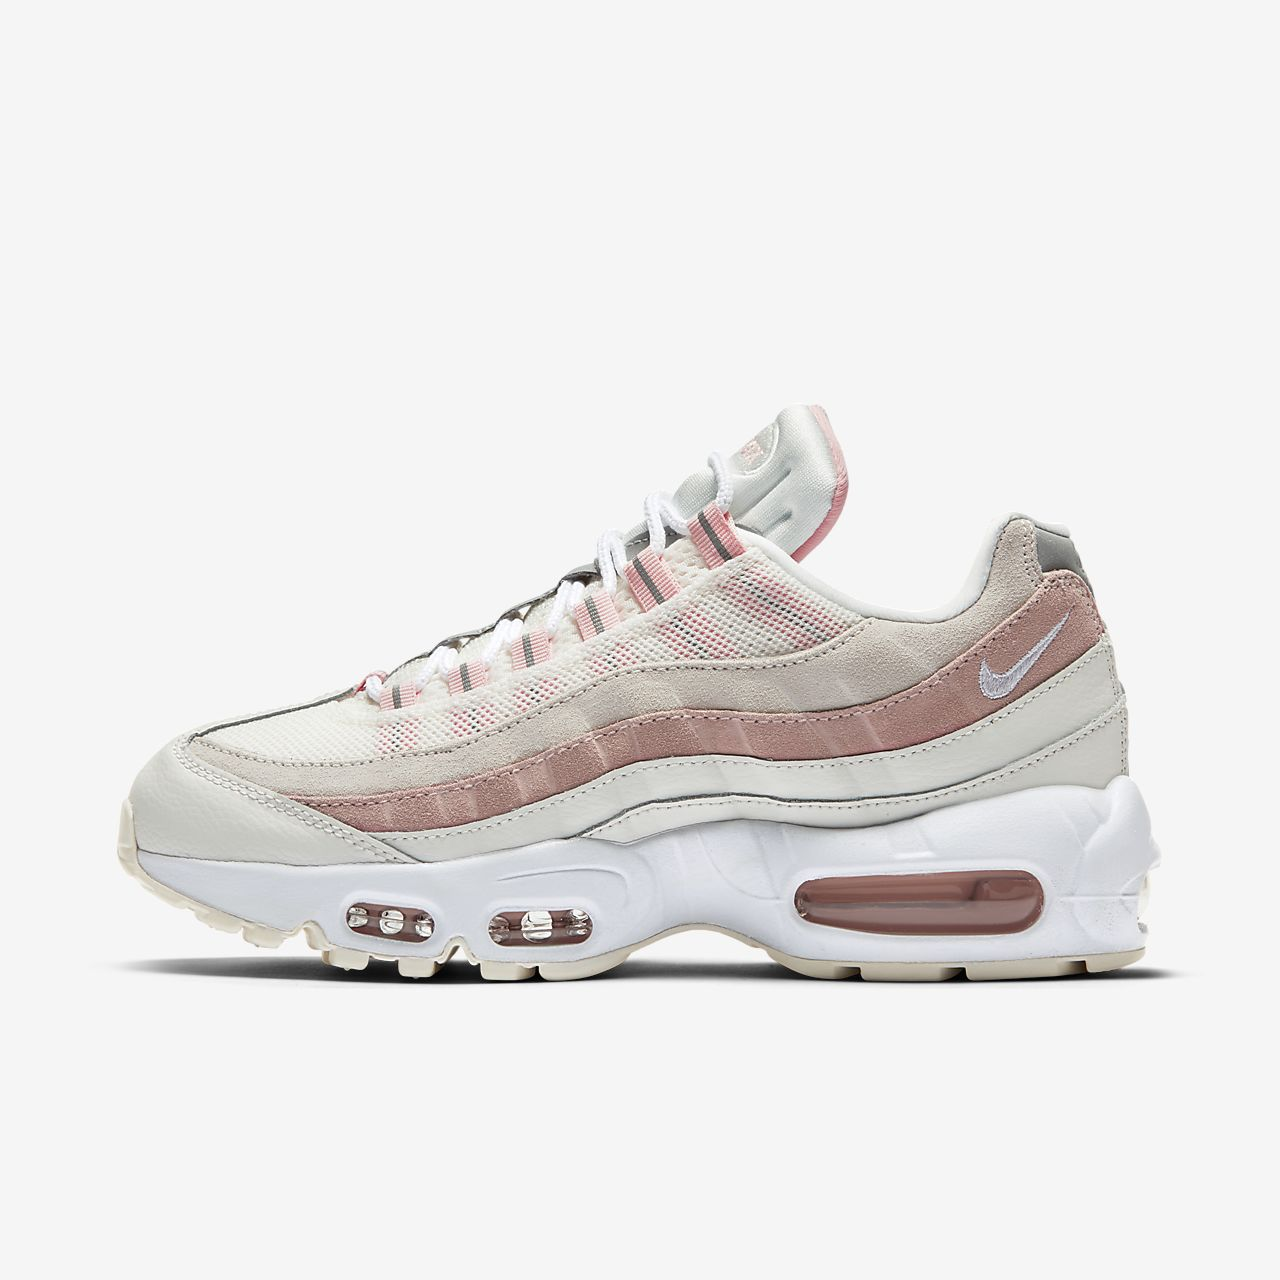 nike air max 95 donna nere